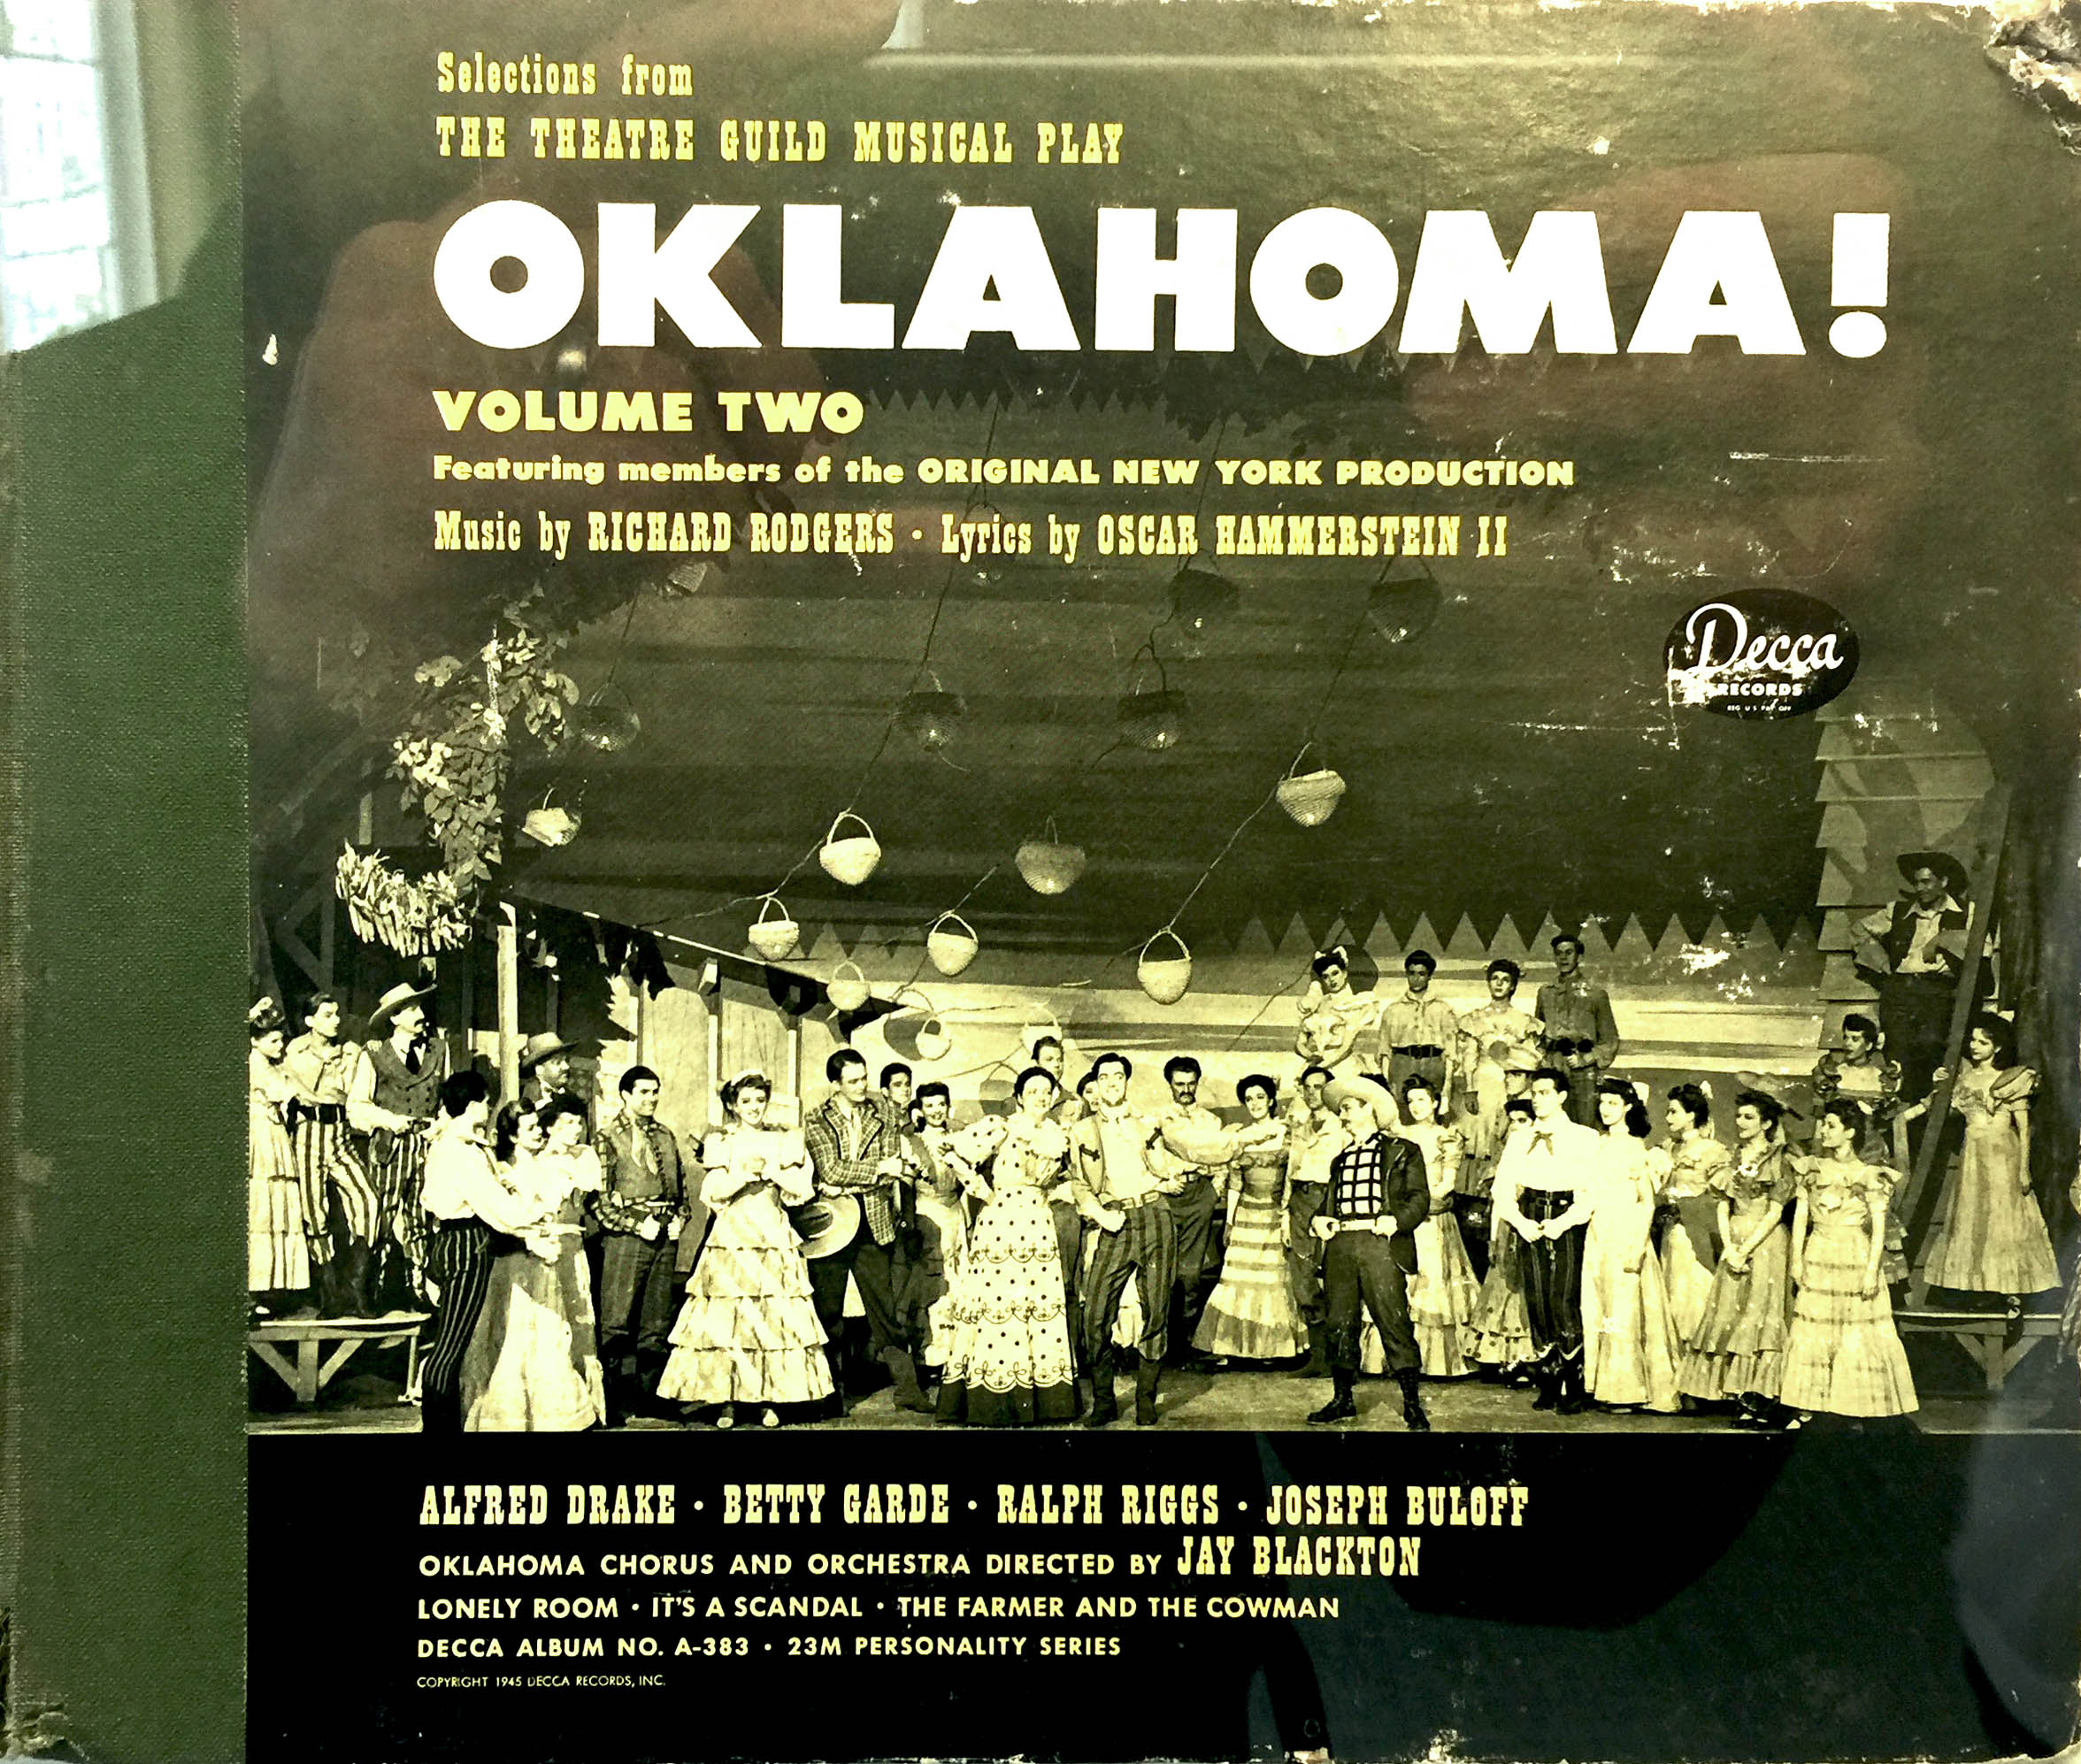 I found this vinyl record album this past week. Pretty cool! The farmer and the cowmanshould be friends!